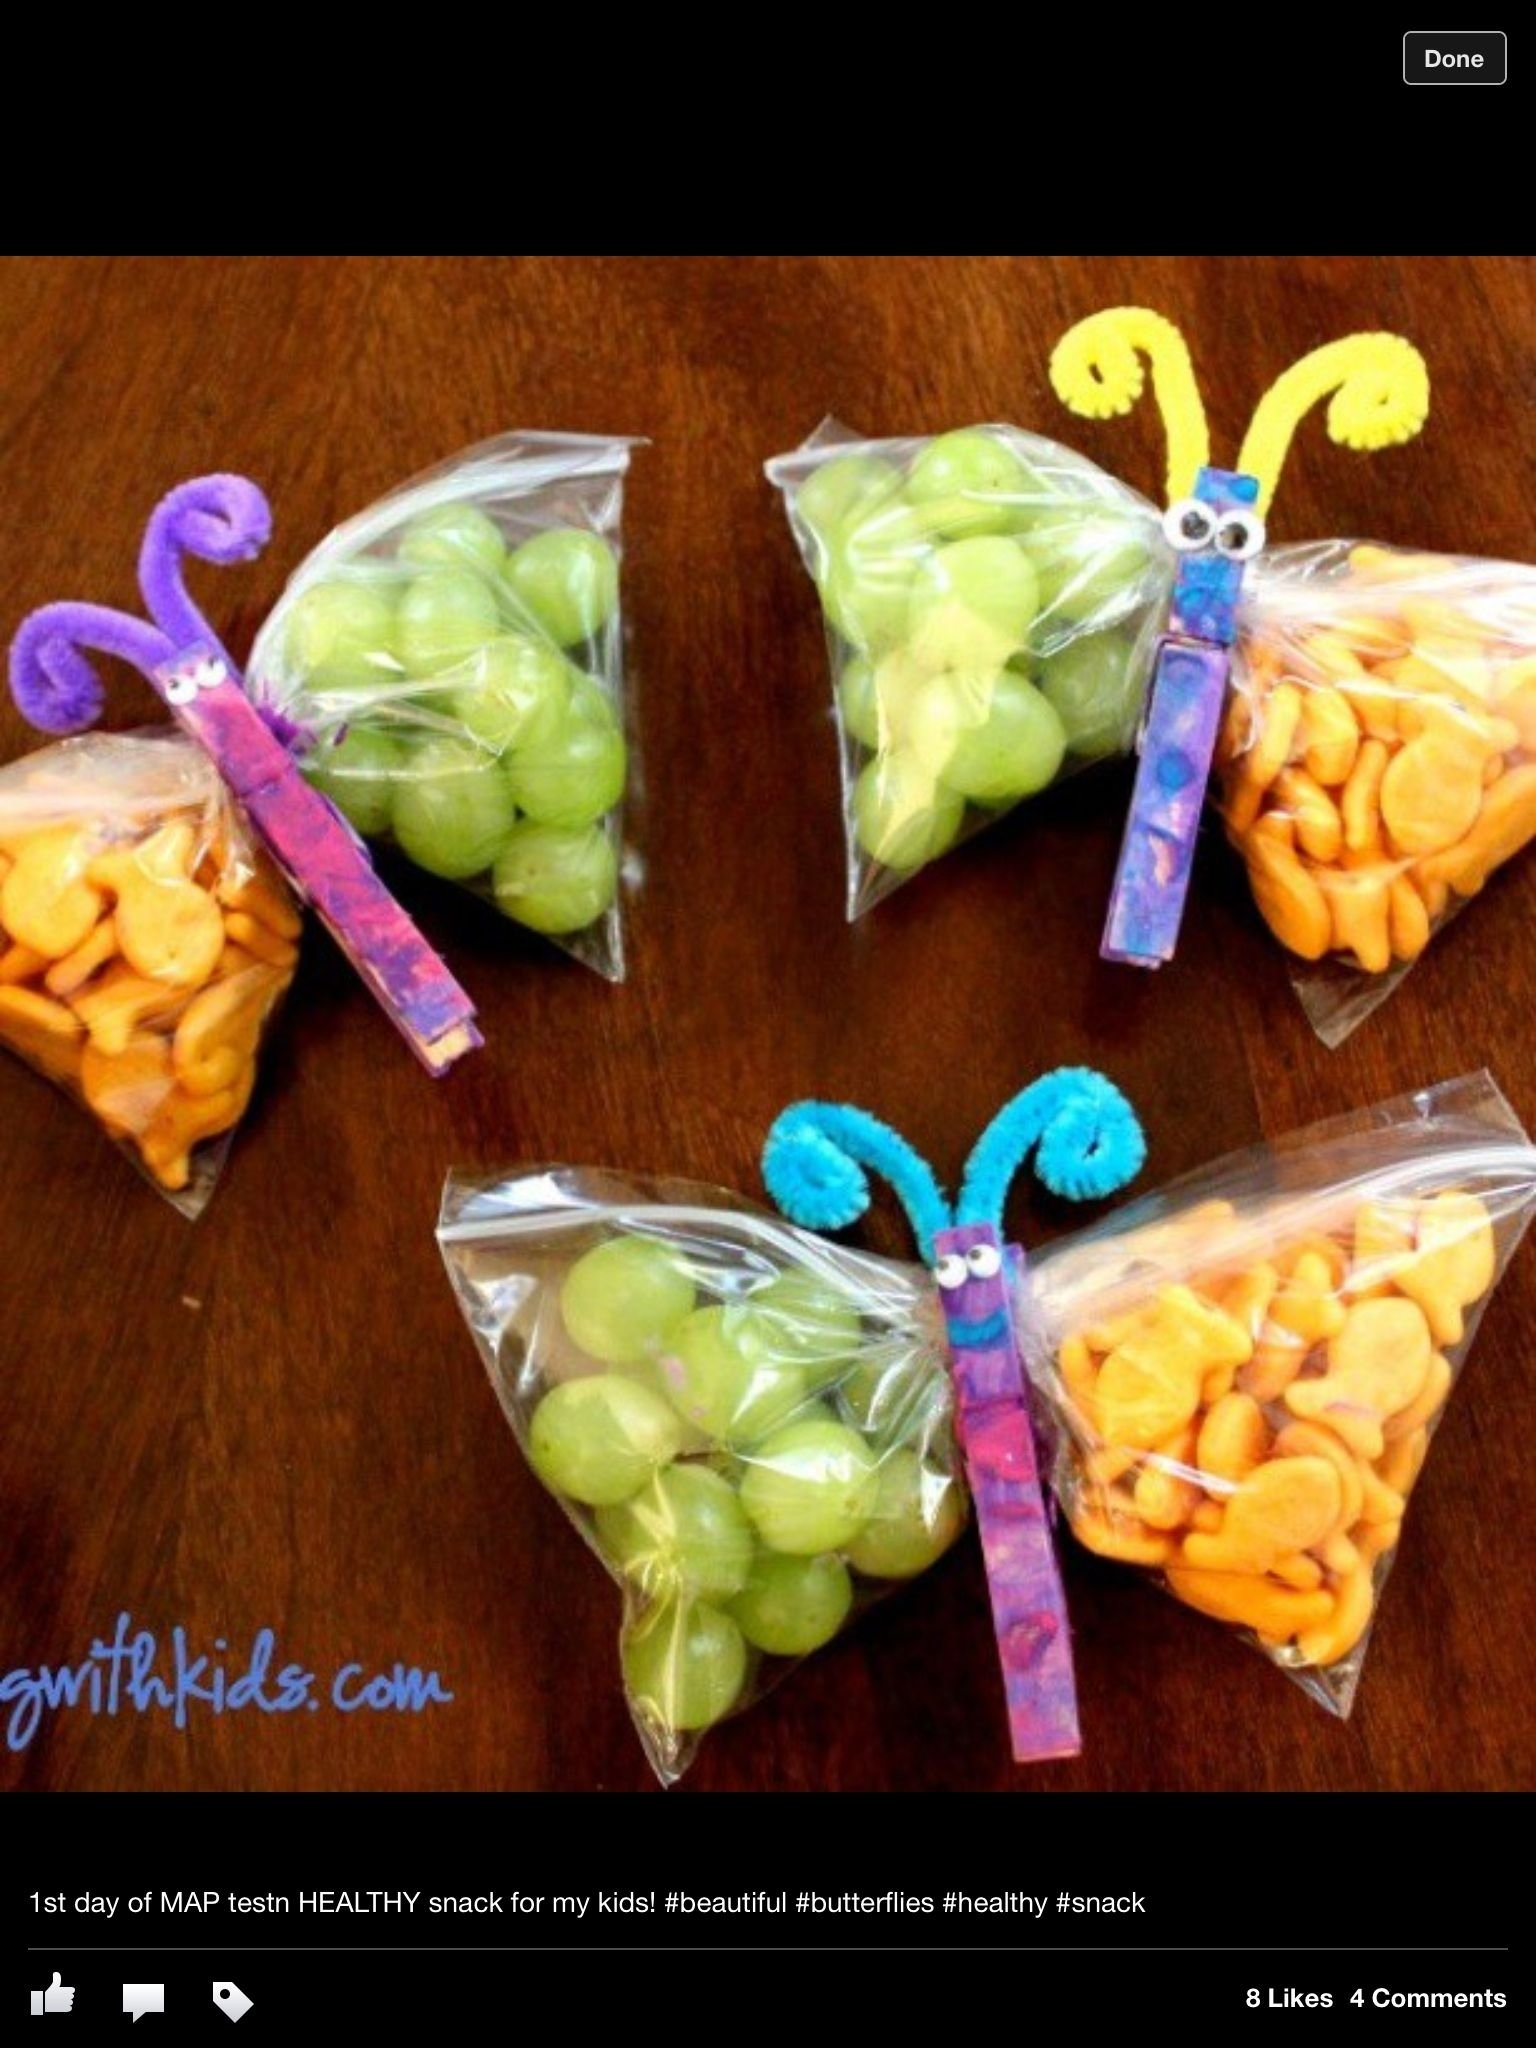 10 Perfect Cute Snack Ideas For Preschoolers 19 easy and adorable animal snacks to make with kids snacks 1 2021